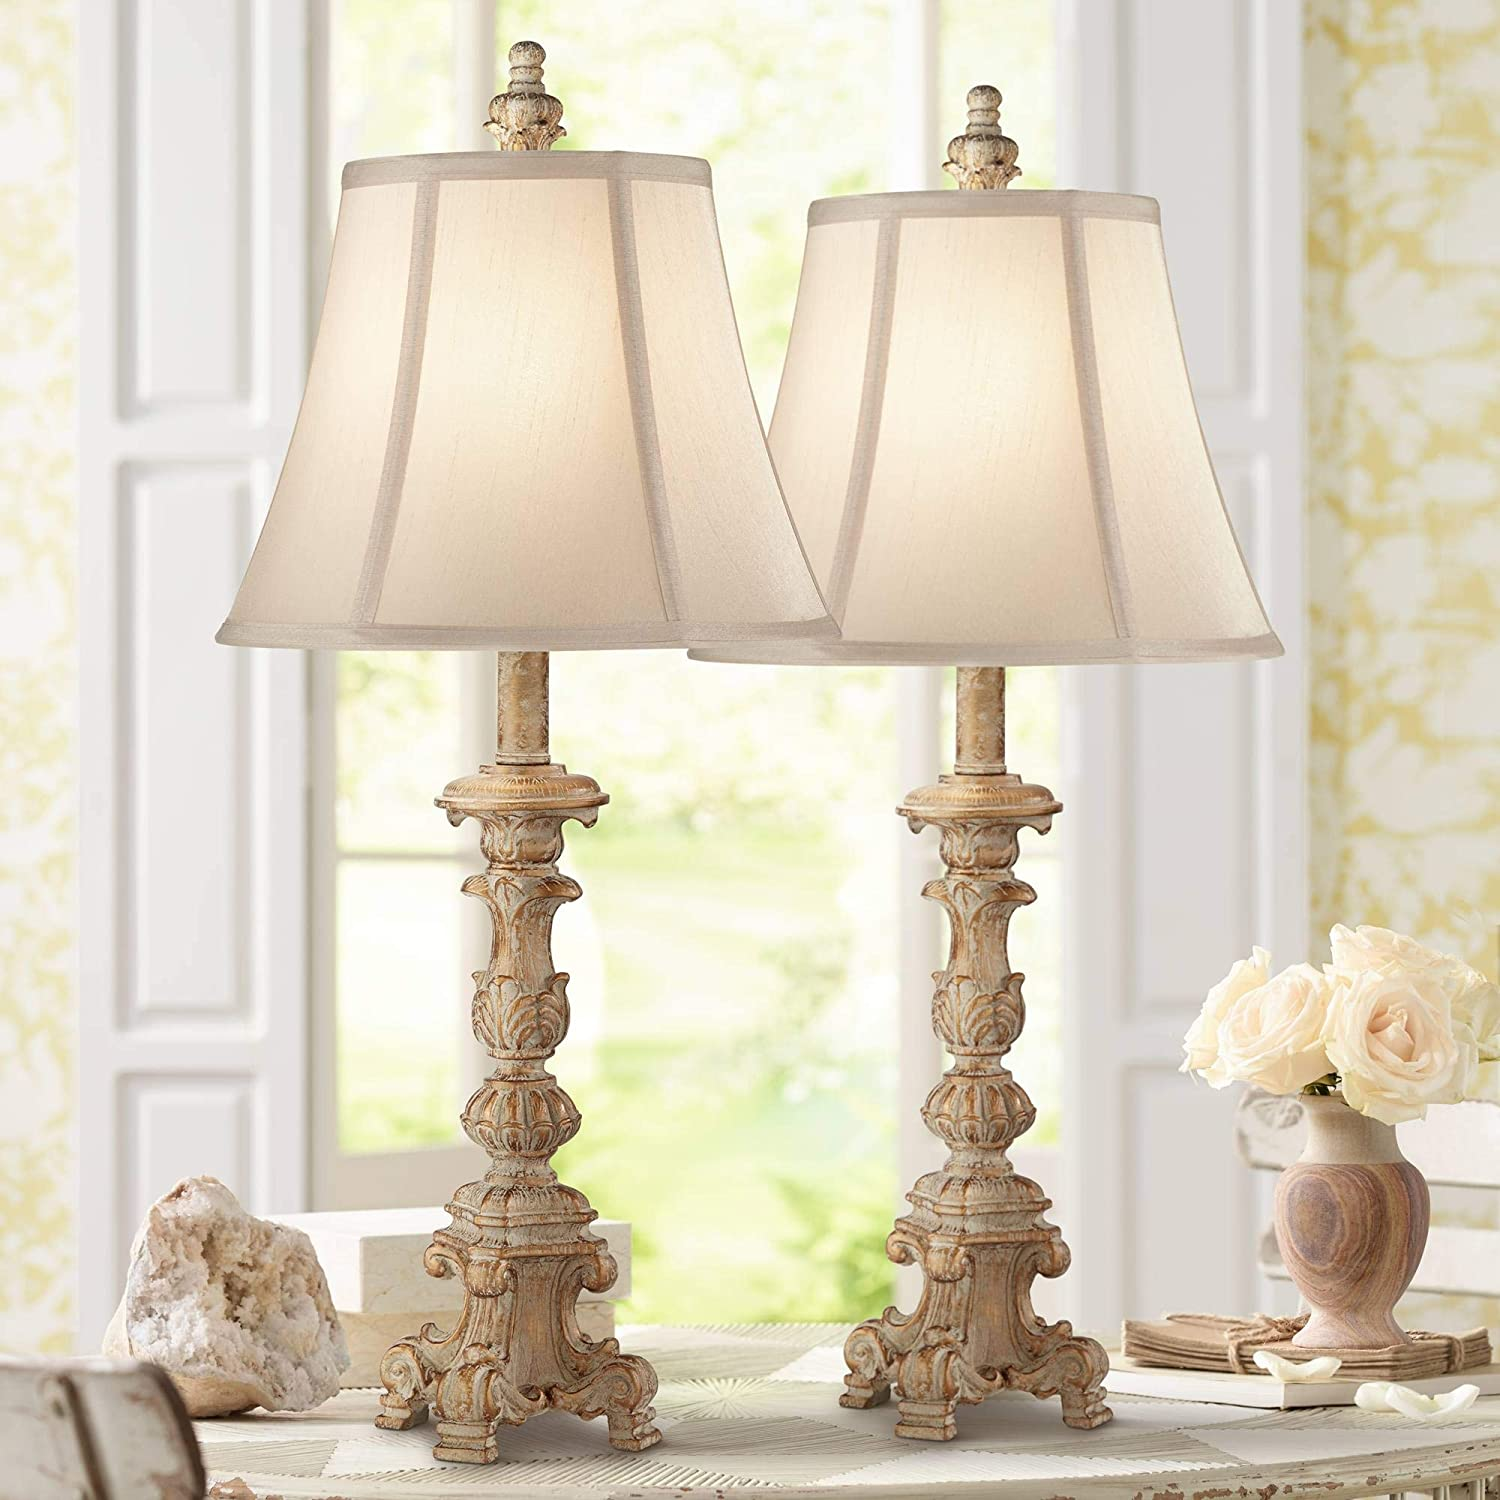 Elize Shabby Chic Table Lamps Set Of 2 With Table Top Dimmers White Washed Candlestick Bell Shade Decor For Living Room Bedroom House Bedside Nightstand Home Office Family Regency Hill